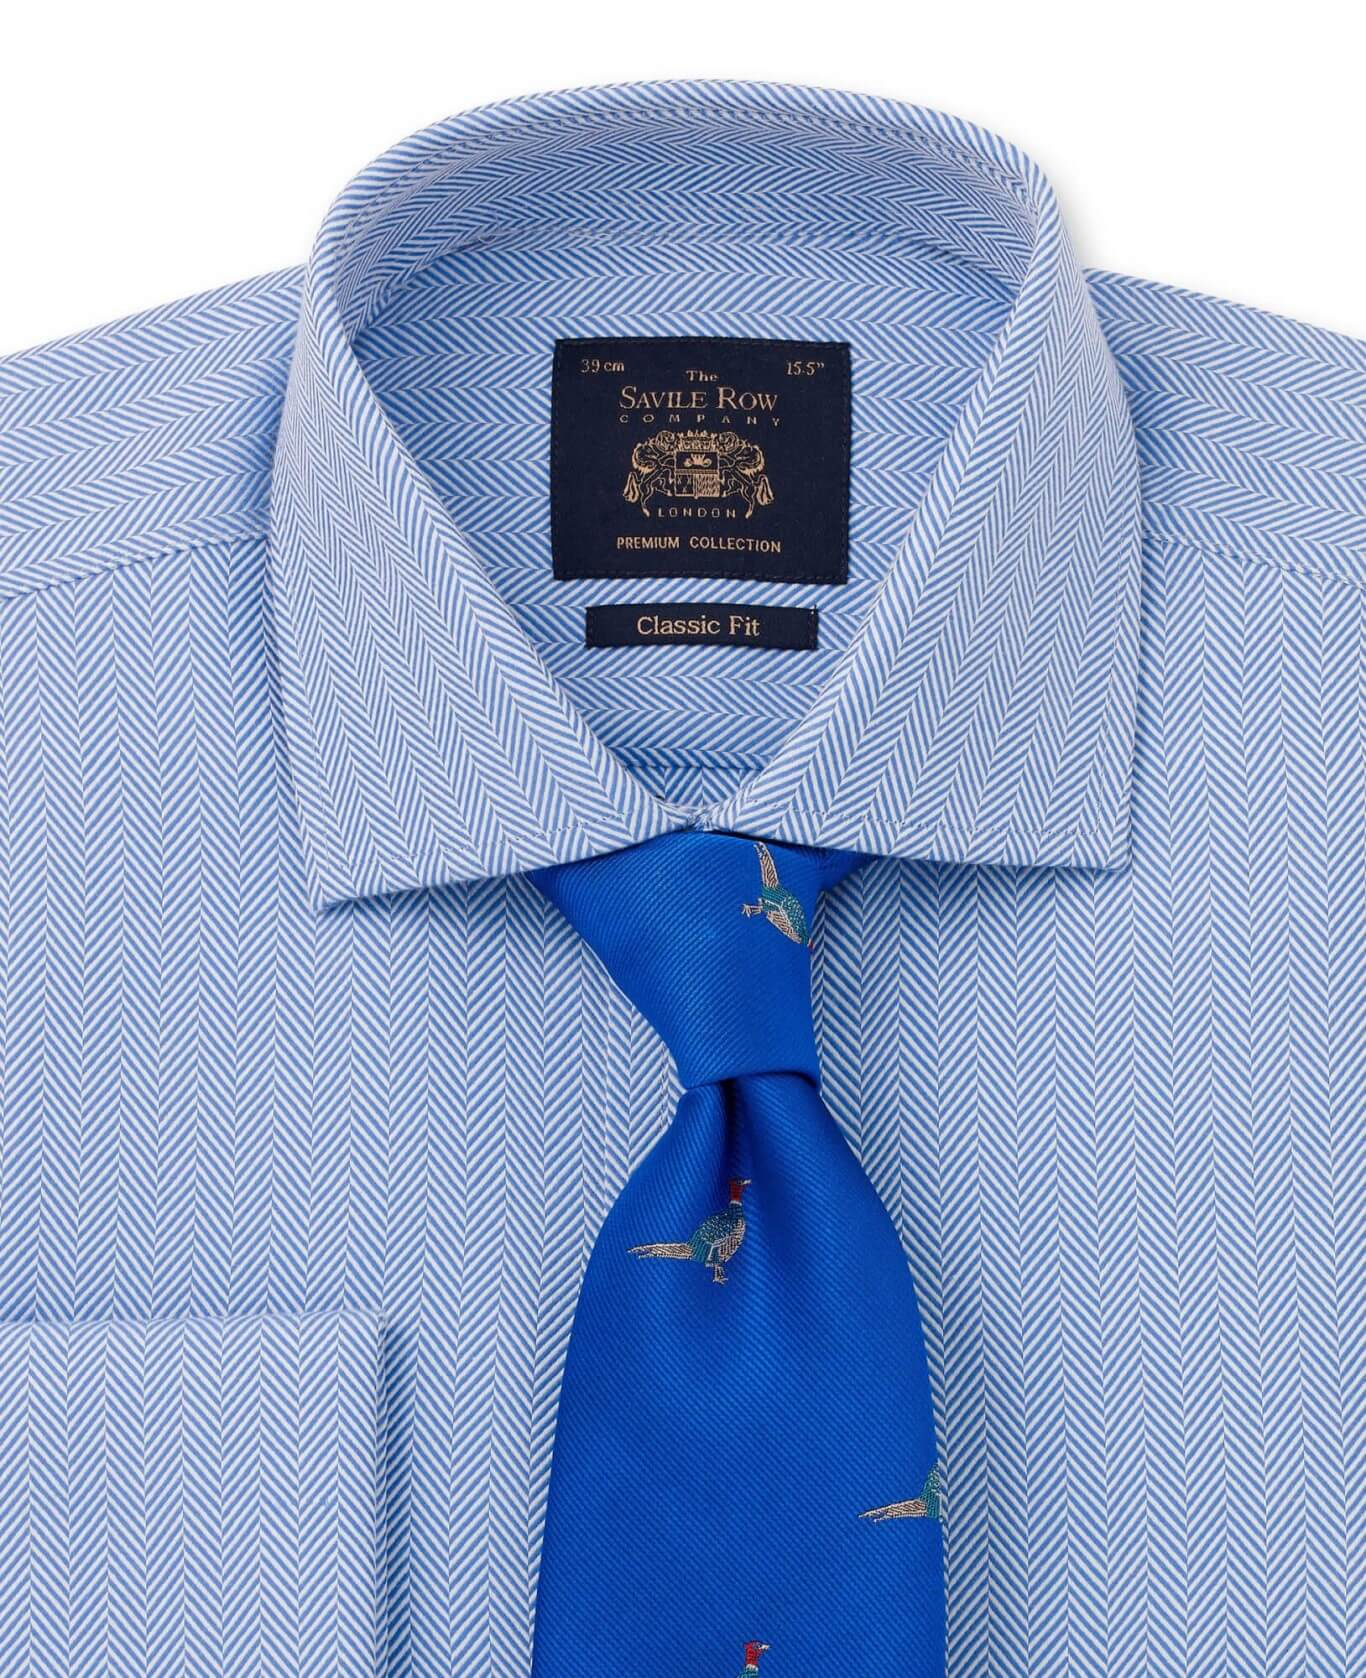 Premium Blue Large Herringbone Classic Fit Double Cuff Shirt-1000BLU